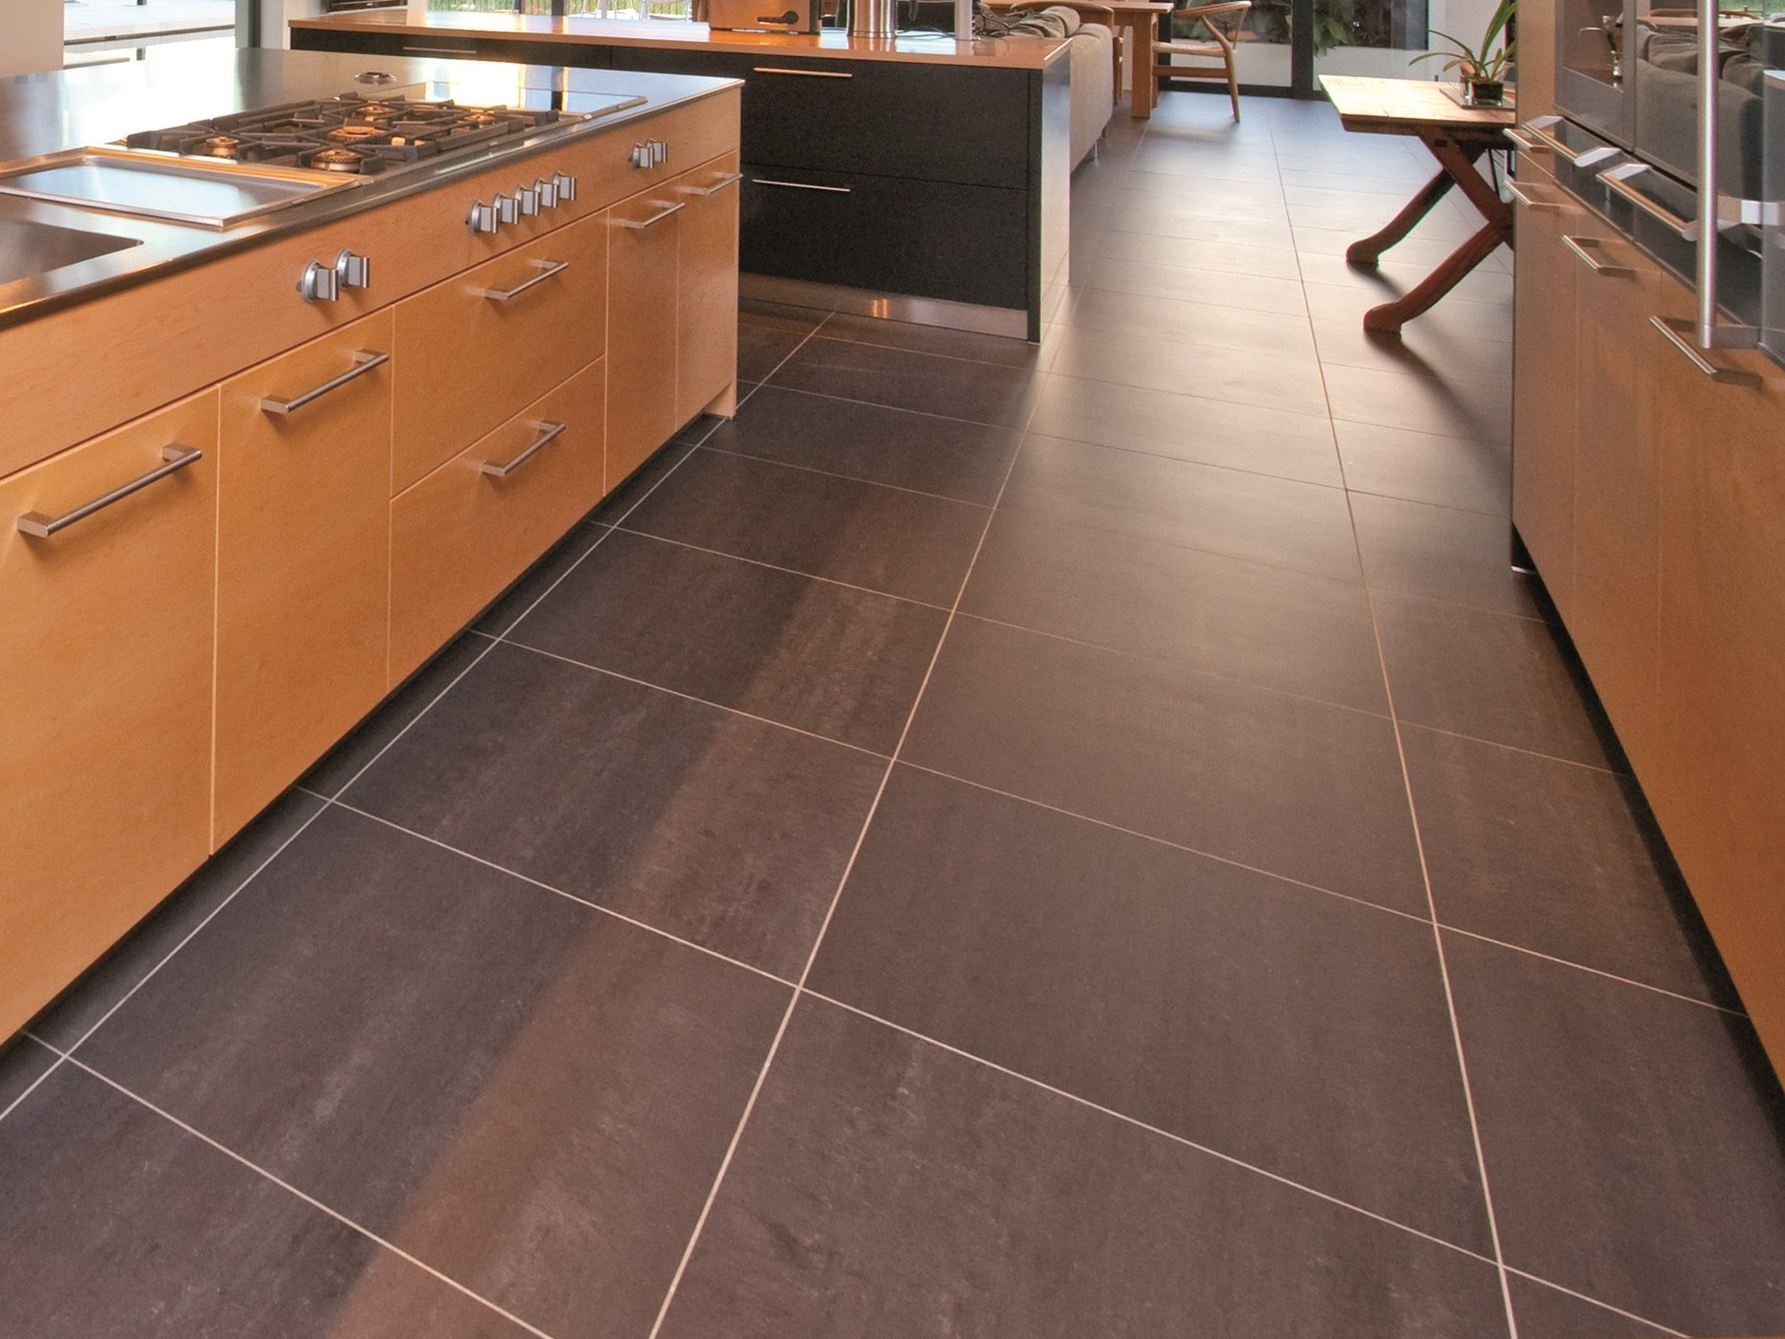 Coverings 2014 Top Tile Trends Jamie Gold Kitchen And